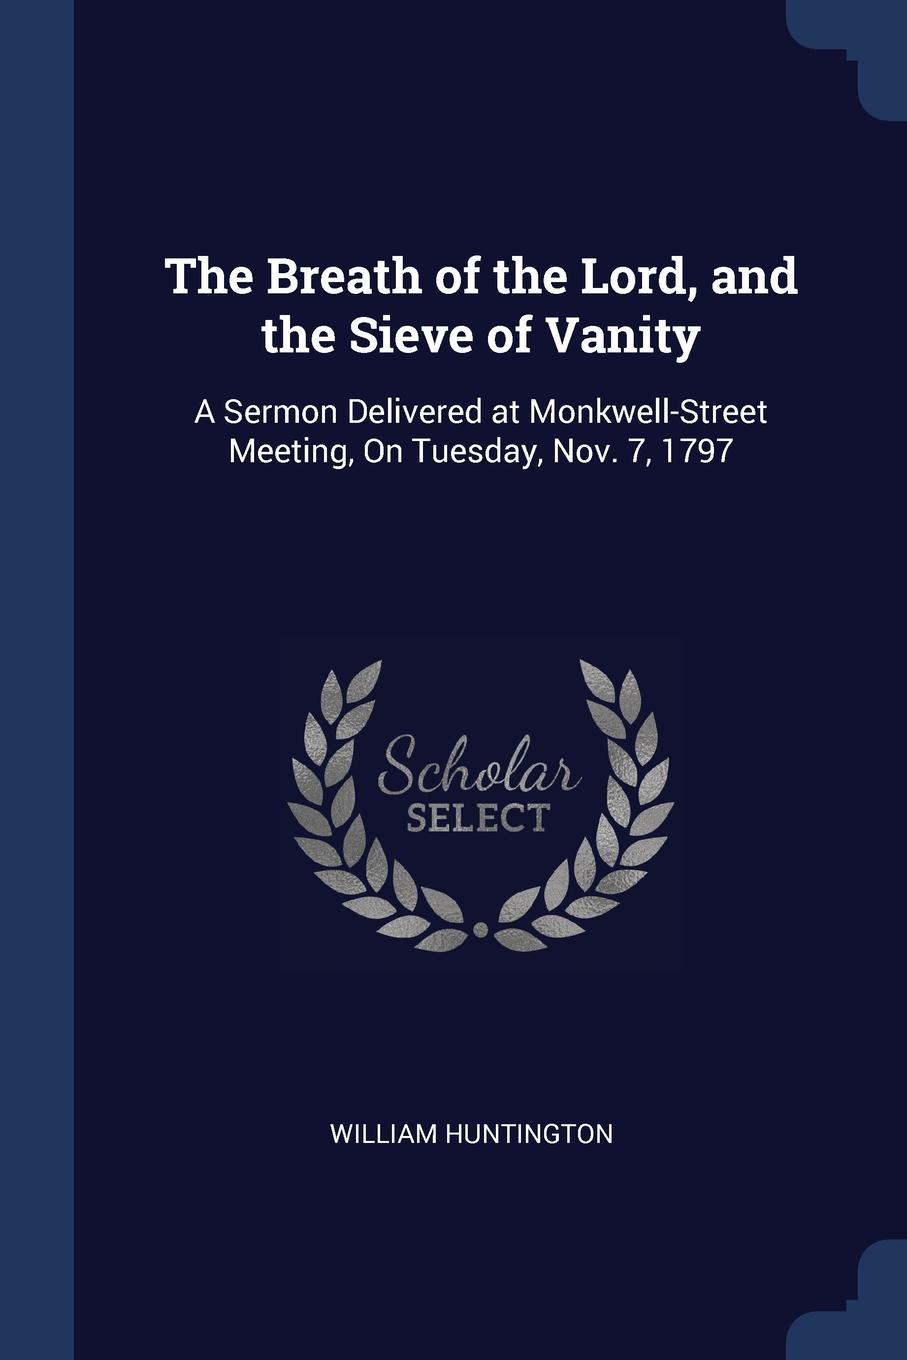 William Huntington The Breath of the Lord, and Sieve Vanity. A Sermon Delivered at Monkwell-Street Meeting, On Tuesday, Nov. 7, 1797